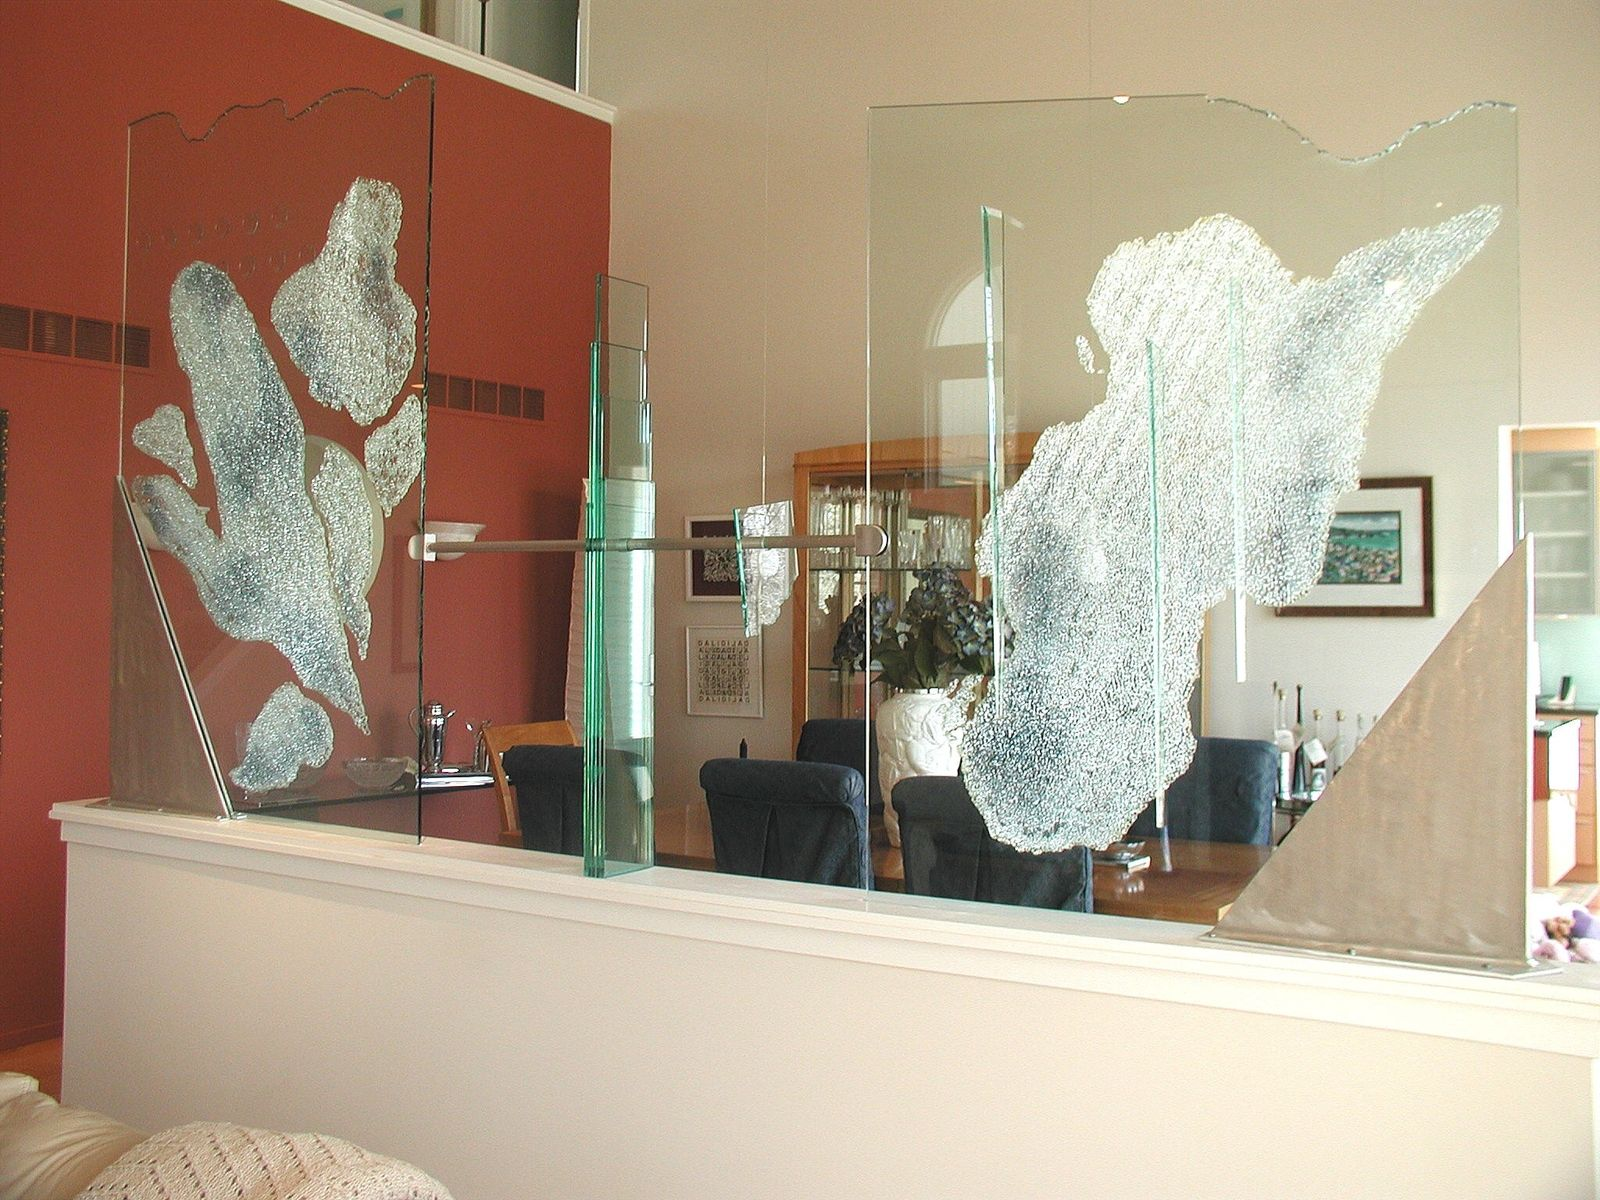 hand crafted glass room dividerjulie mcdonough architectural